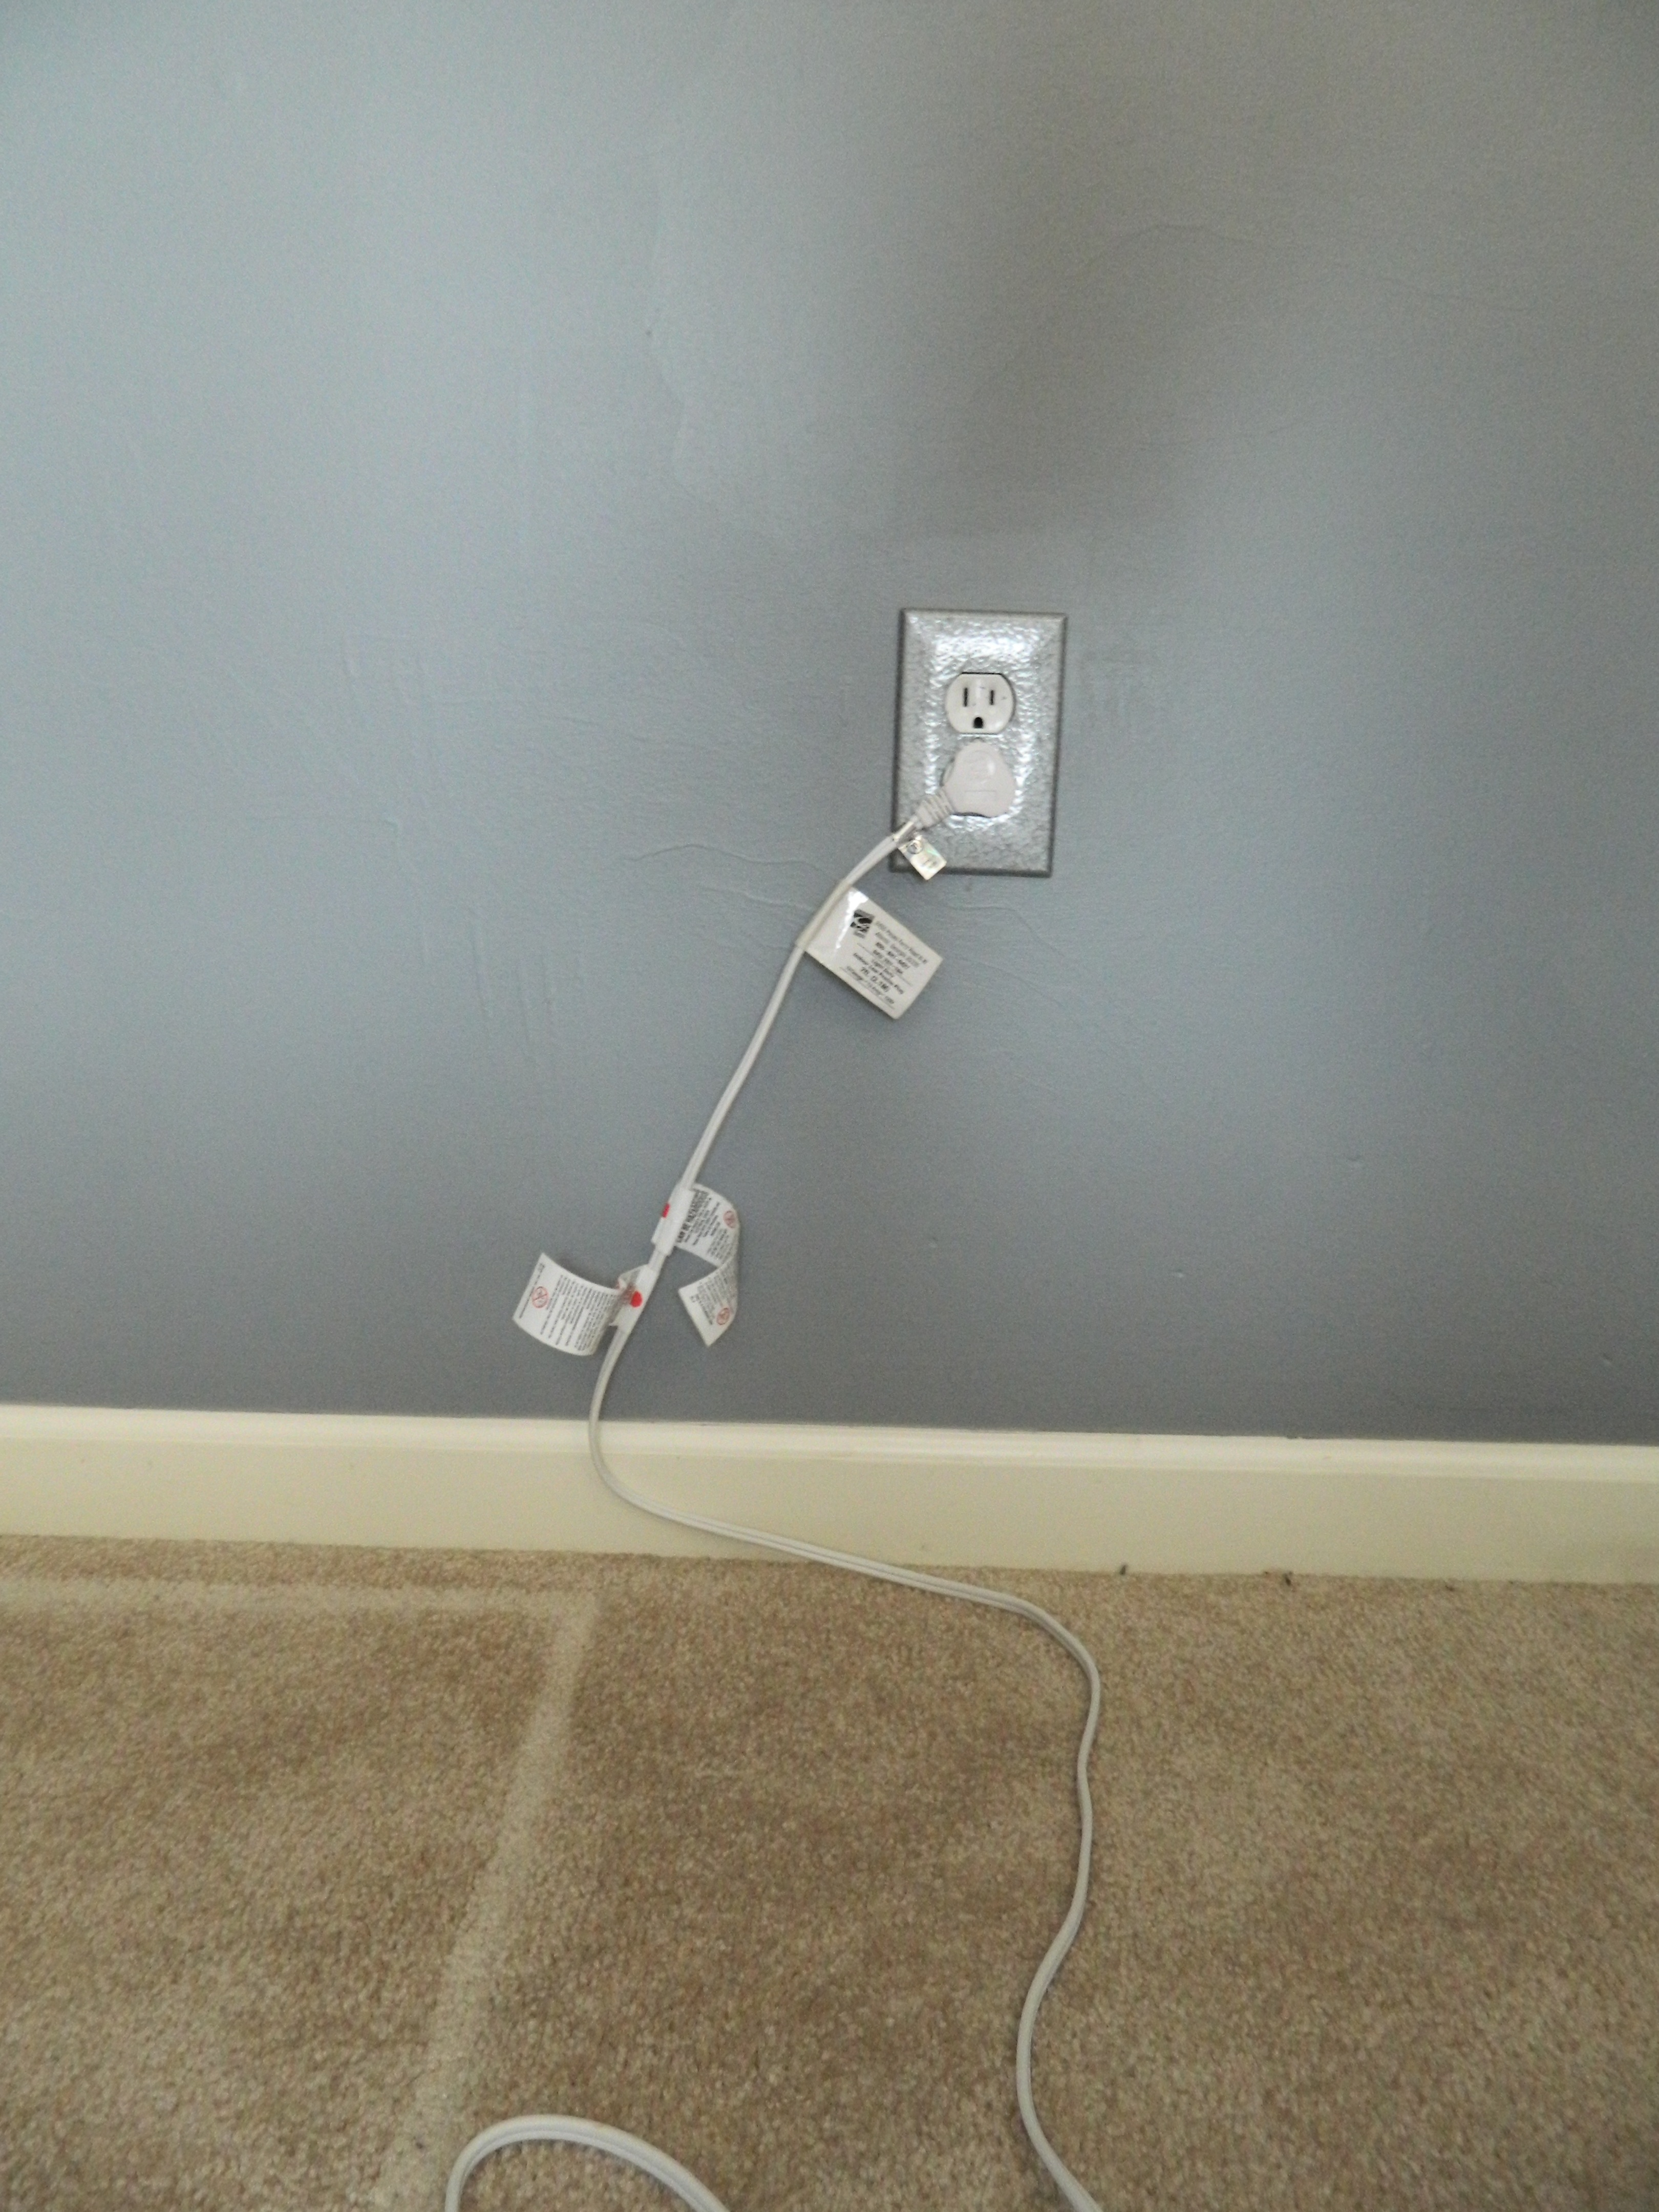 Flat Extension Cord Home Depot : The kid s room re do nearing finish line on my